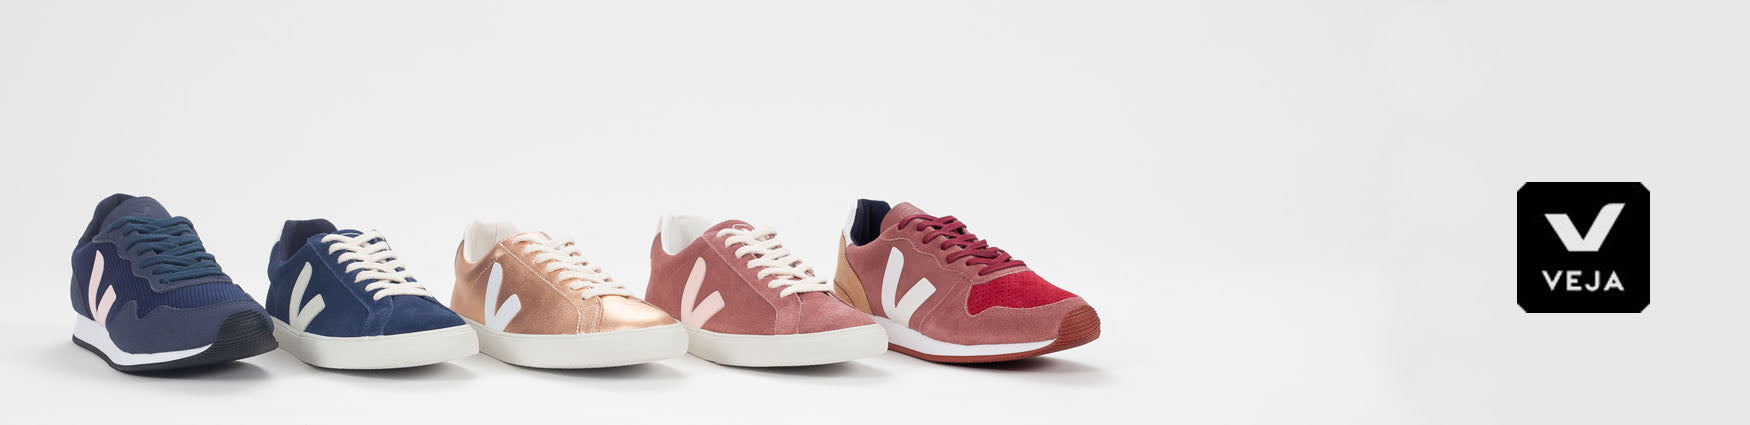 Veja SW18 Trainers | Shop online at Roo's Beach UK